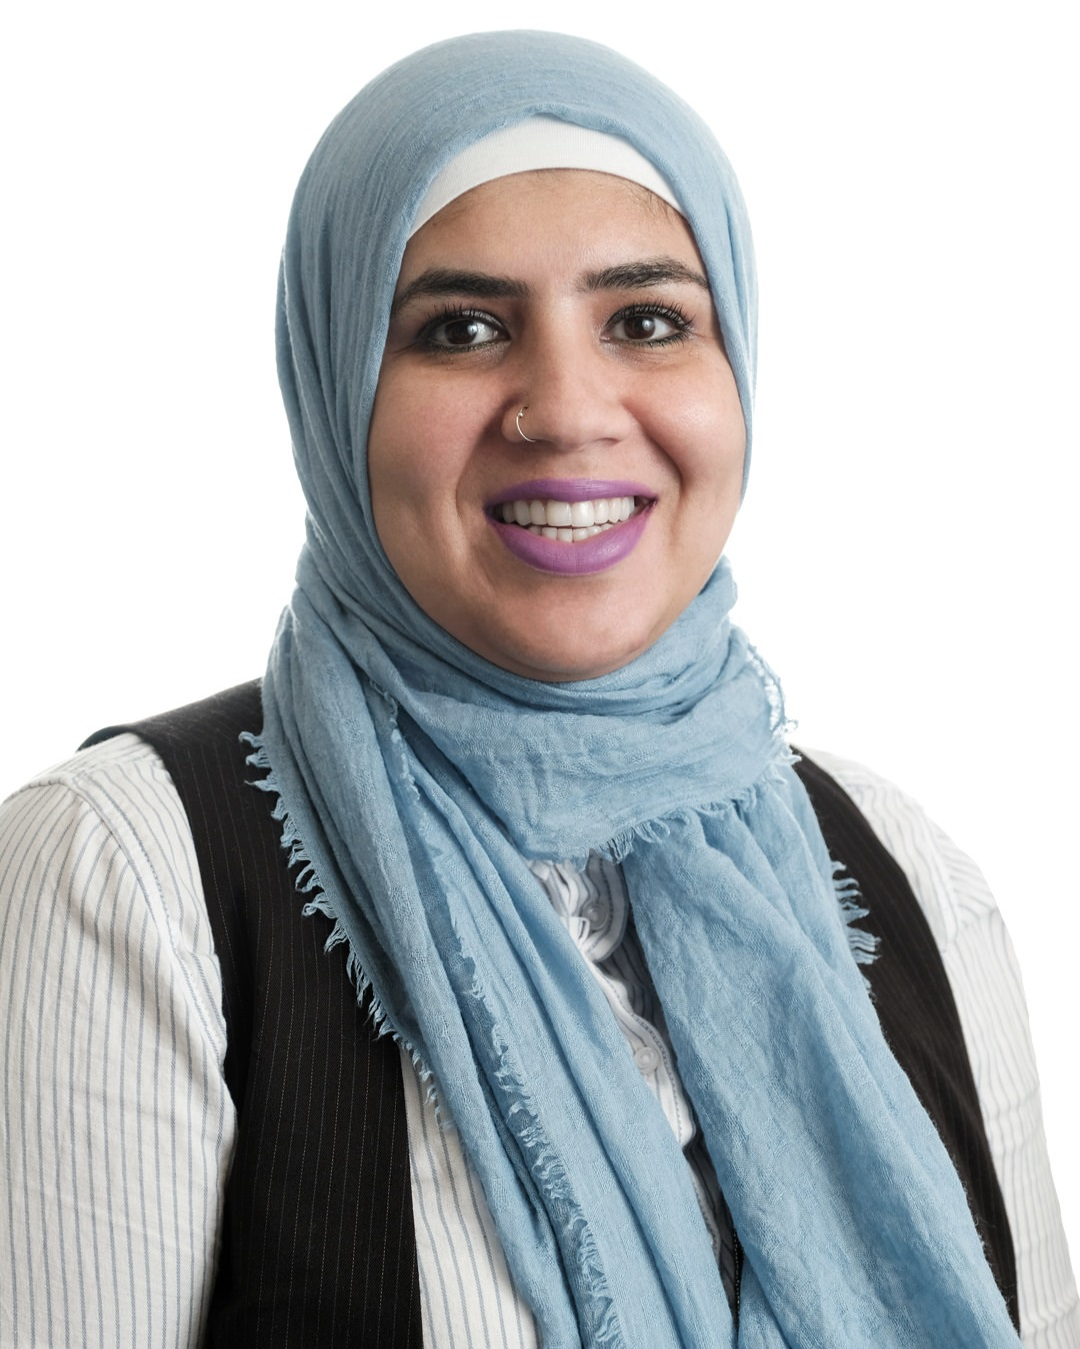 Rehab Ahmed, Carer Support Services Manager   Rehab Ahmed, came to Perth from Cairo, Egypt in October 2001 after she completed a Bachelor Degree in Archaeology and had a successful career in administration. She speaks Arabic, English, and French.  In 2014 Rehab completed a Diploma in Community Services of Work because she realised she wanted a career in which she could make a difference in women's lives by providing hope, encouragement and the knowledge that they have choices.  Rehab is working at Ishar Multicultural Women's Health Centre since 2014. She is currently the Carer Support Services Manager and studying Diploma of Interpreting (LOTE).